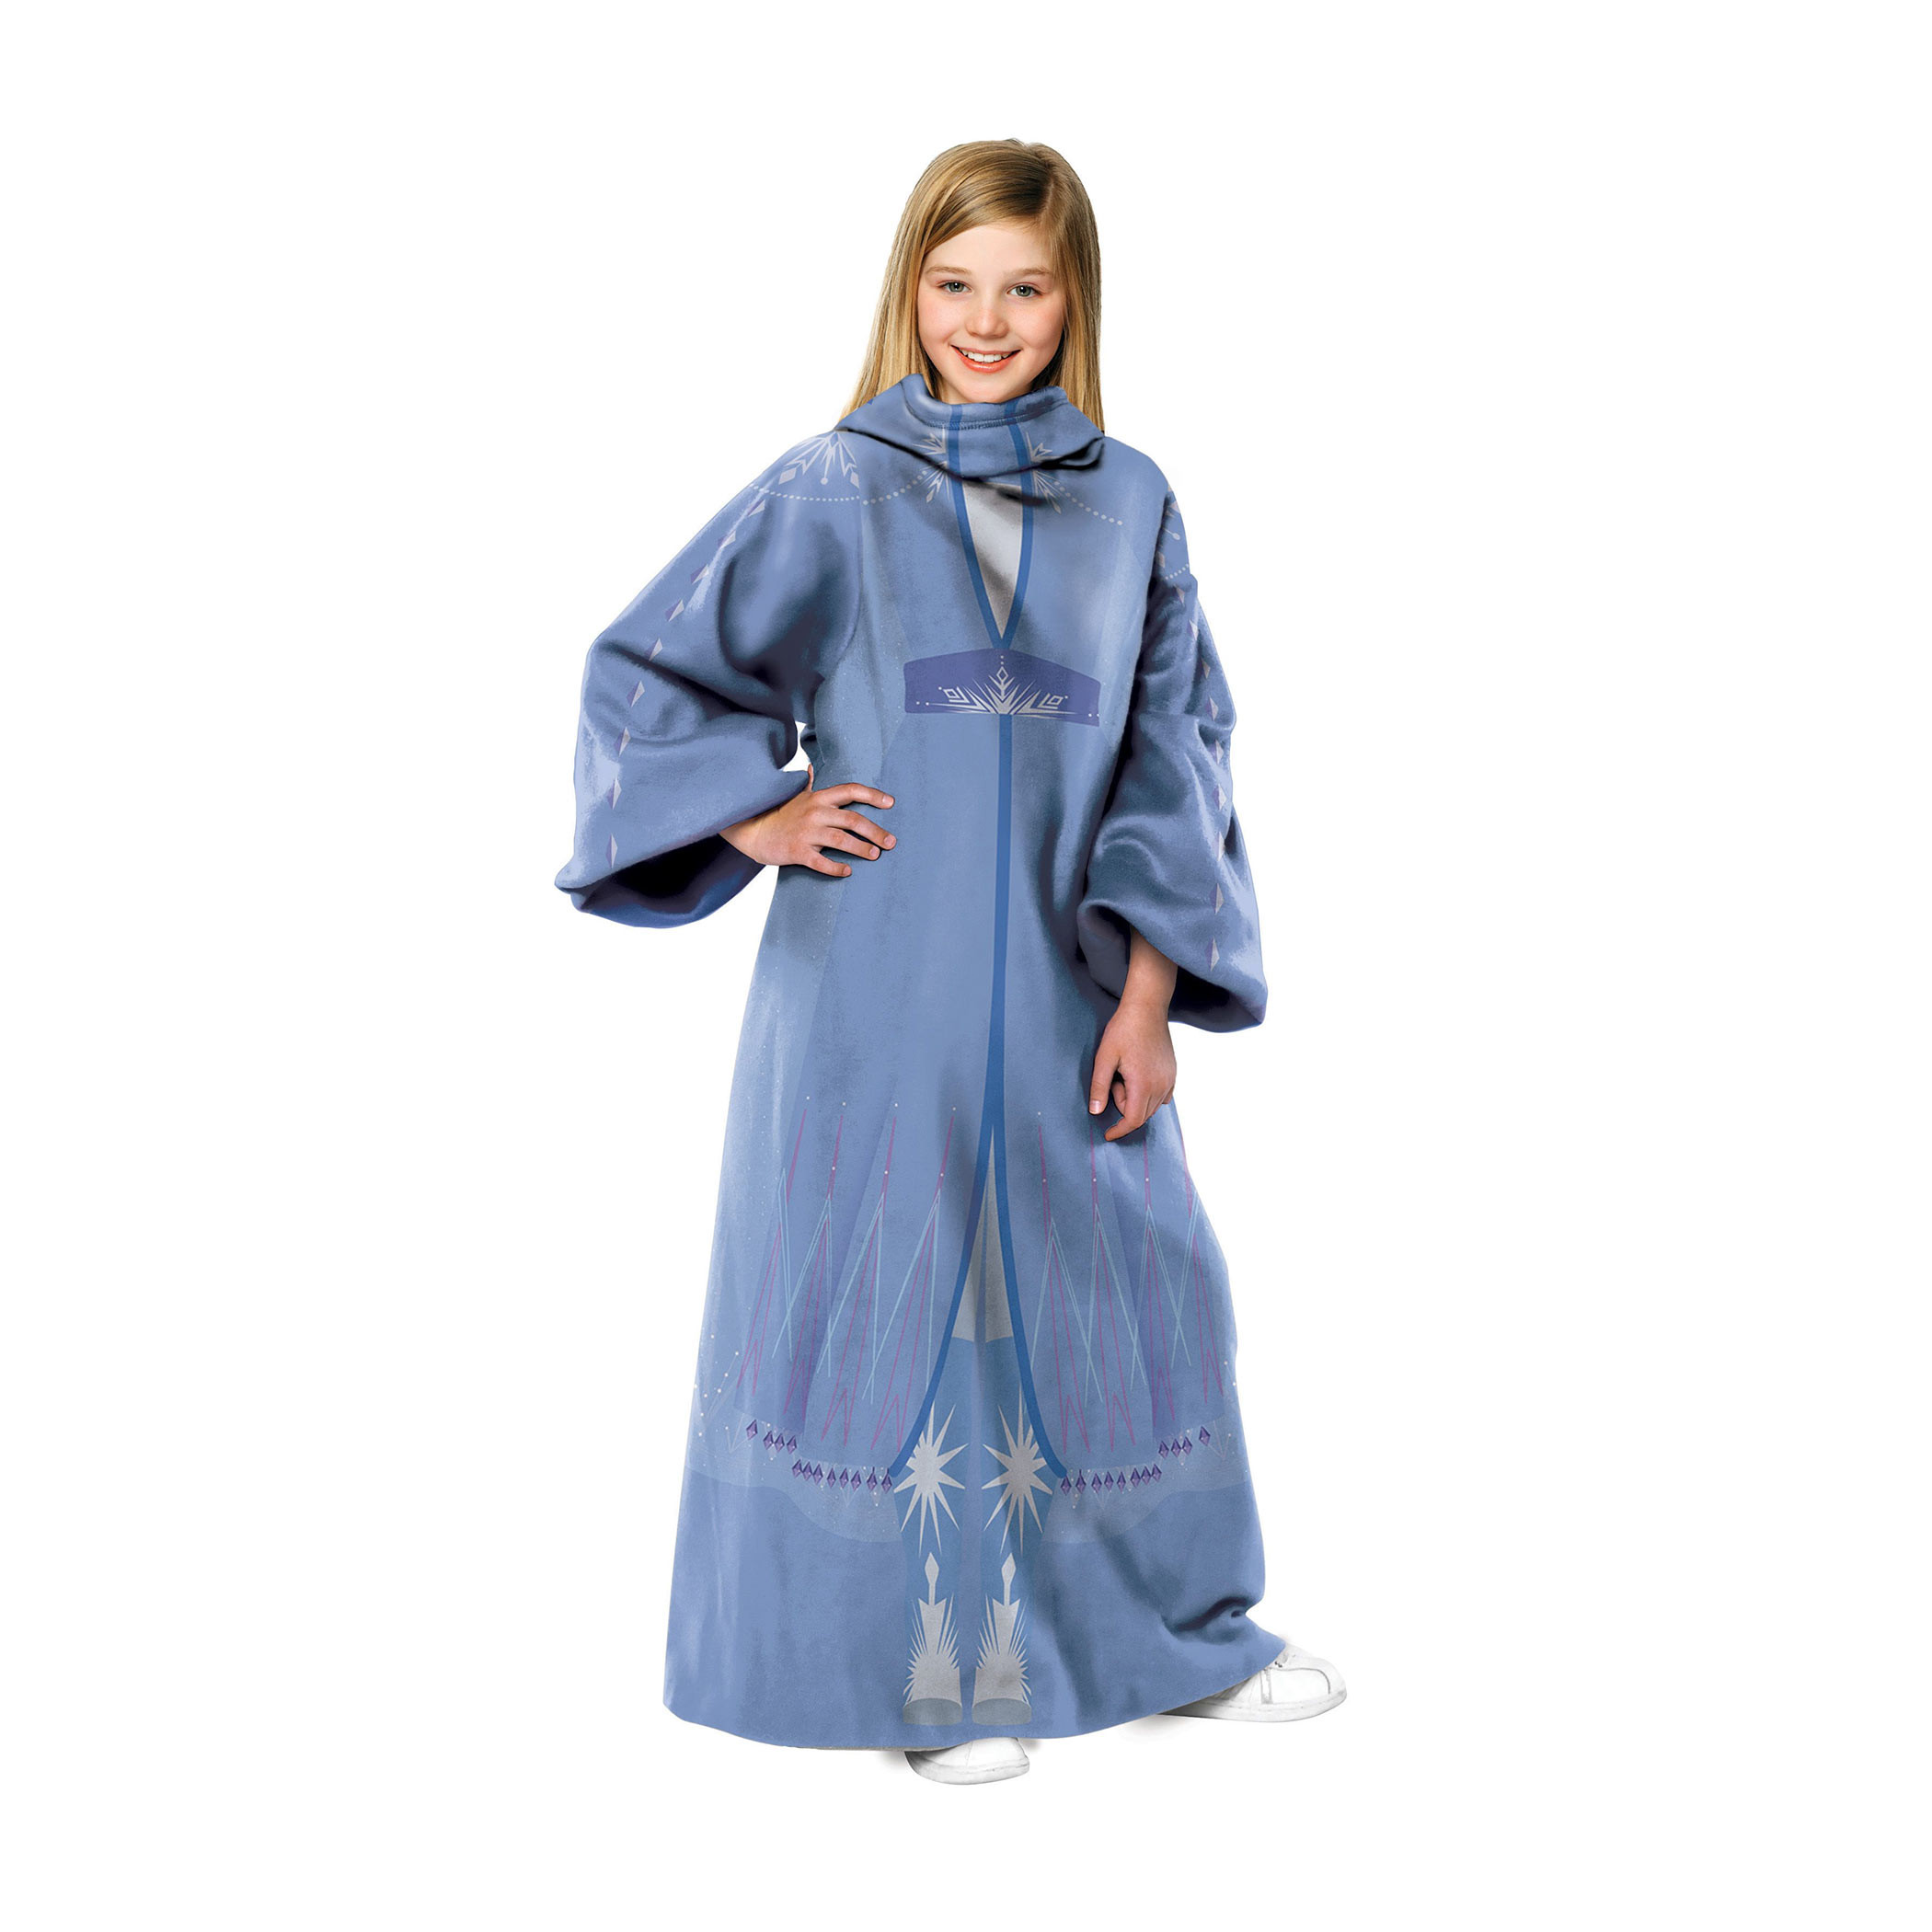 Frozen 2 Elsa Youth Throw Blanket With Sleeves